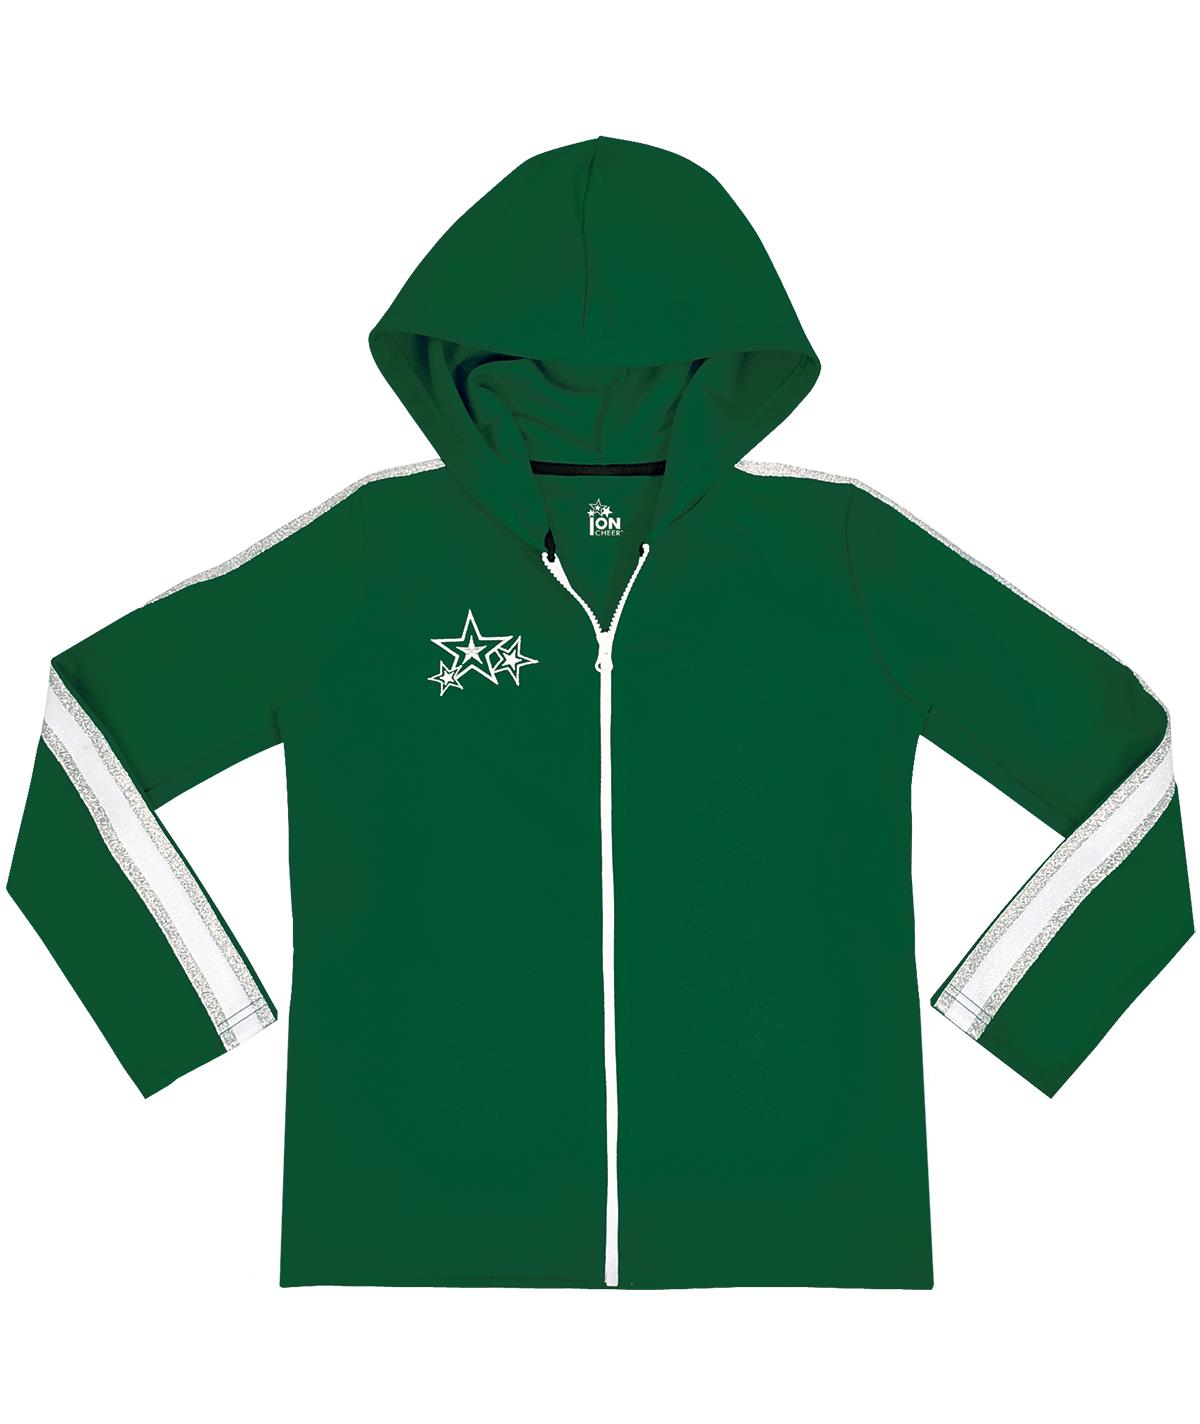 ION Athletics Inspiration Jacket